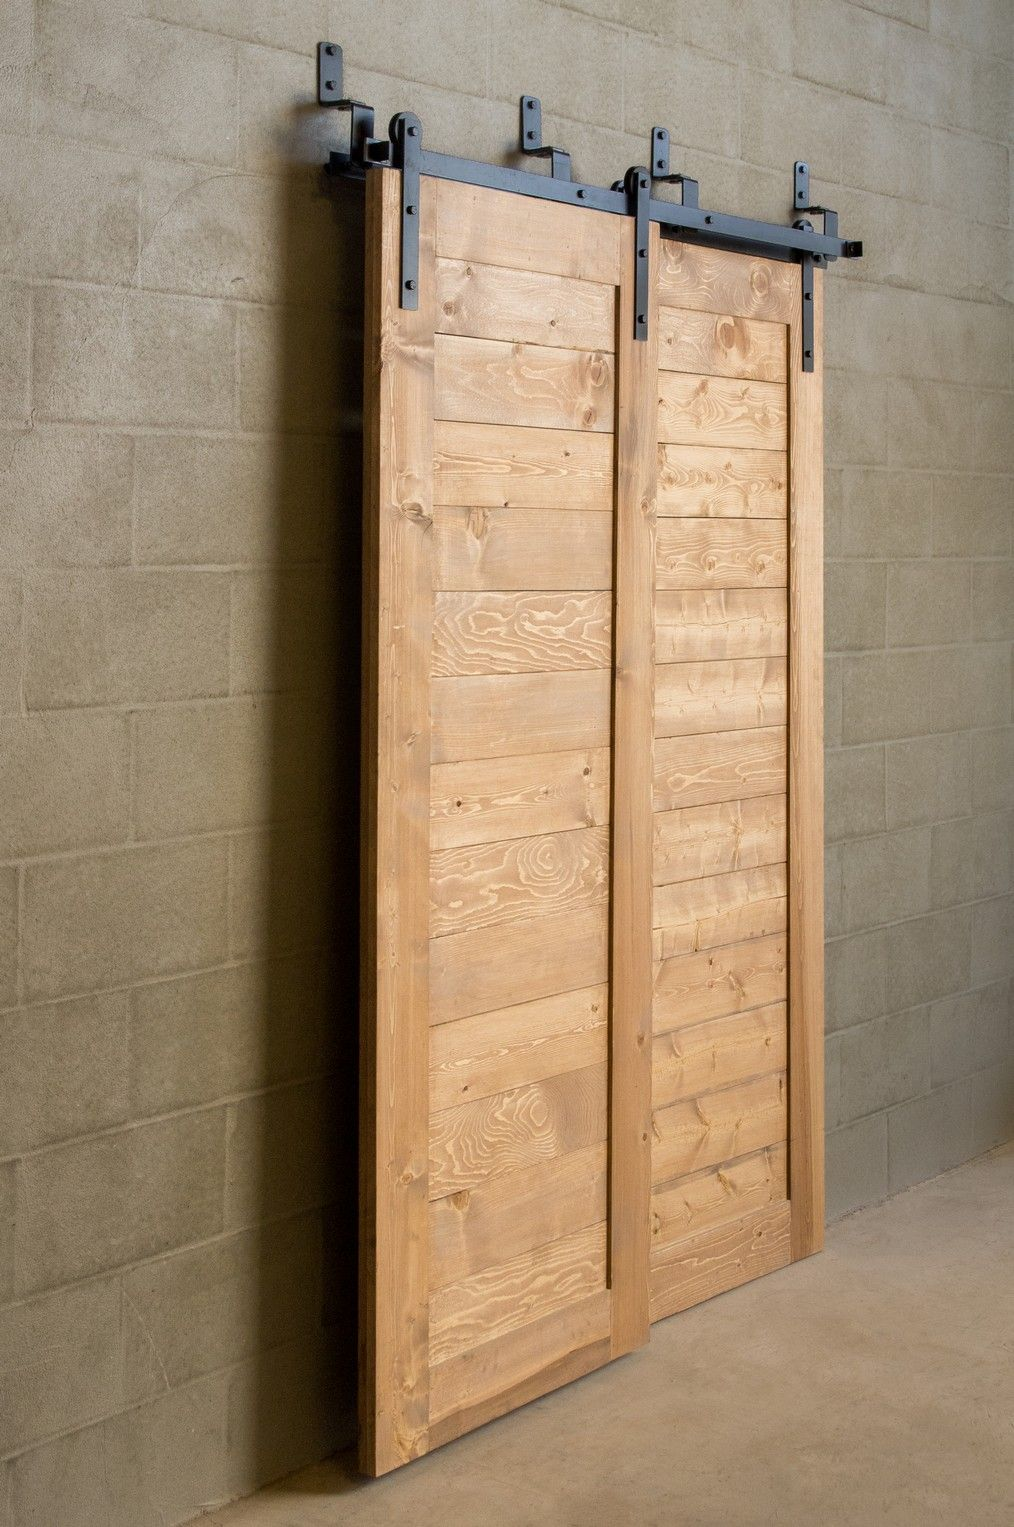 Bypass Sliding Barn Door for tight spaces $625 Hardware | NW Artisan Hardware & Bypass Barn Door Hardware | Barn doors Barn and Hardware